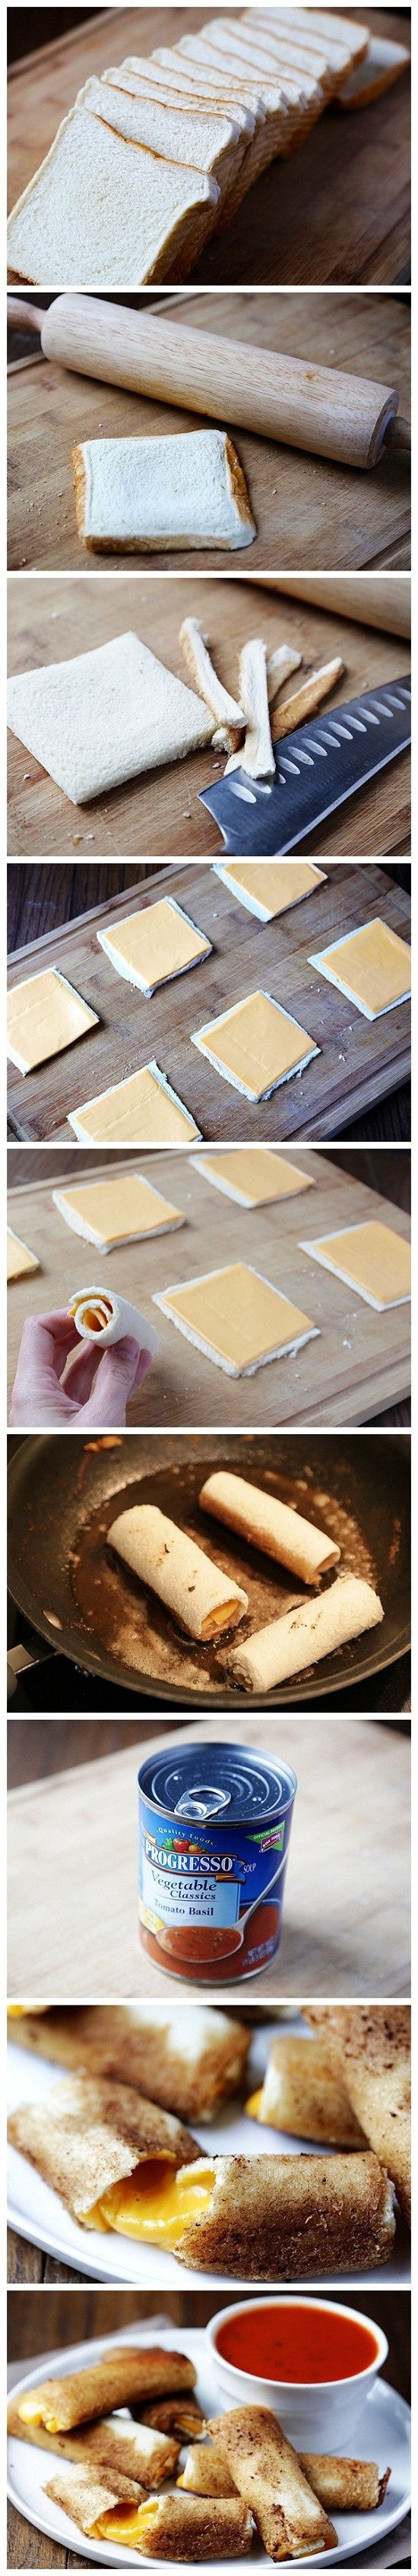 Quick and Easy Cheese Sticks | 40 Creative Food Hacks That Will Change The Way You Cook